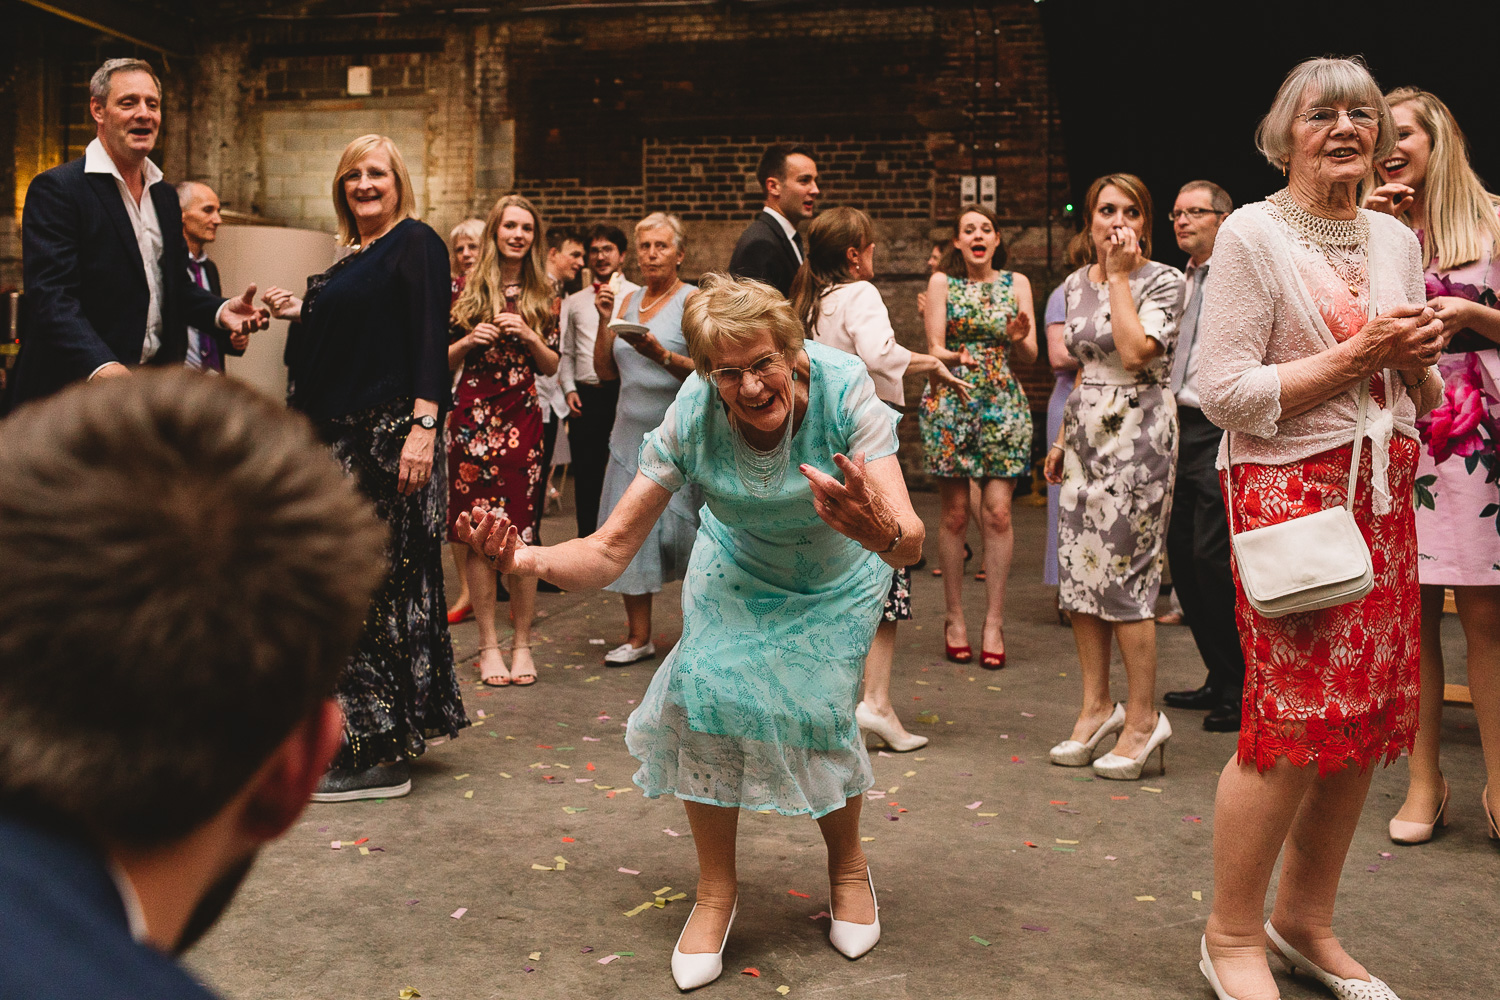 Granny in mint green dress having a boogie at fun wedding party at alternative warehouse wedding venue 92 burton road